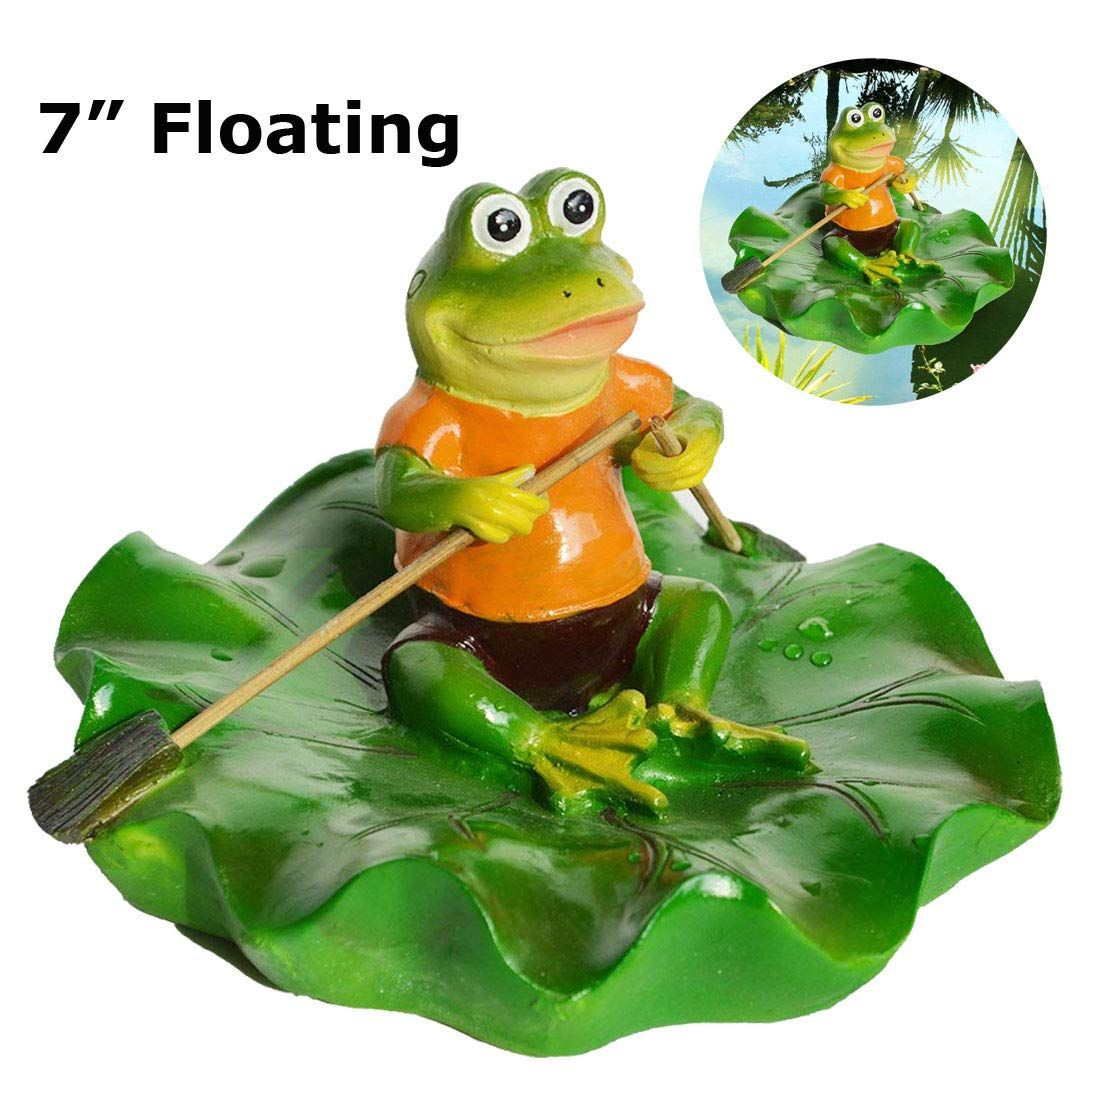 Resin Floating Frogs Statue Cute Frog Sculpture Outdoor Garden Pond Decorations